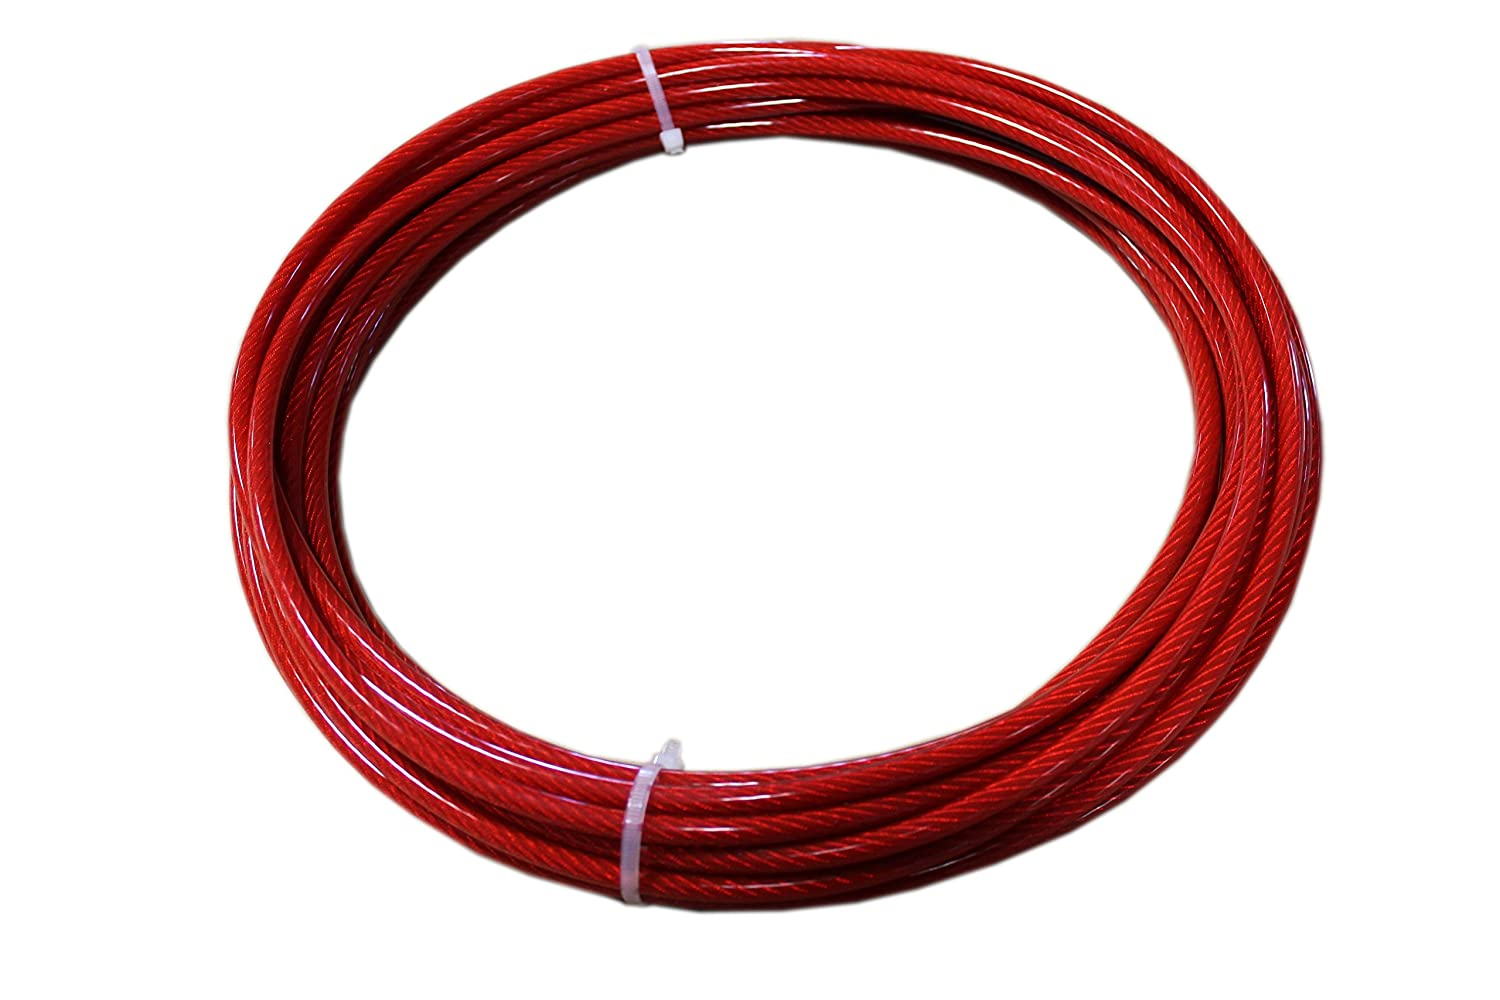 Loos Stainless Steel 302/304 Wire Rope, Vinyl Coated, 7x19 Strand Core, Red, 1/8